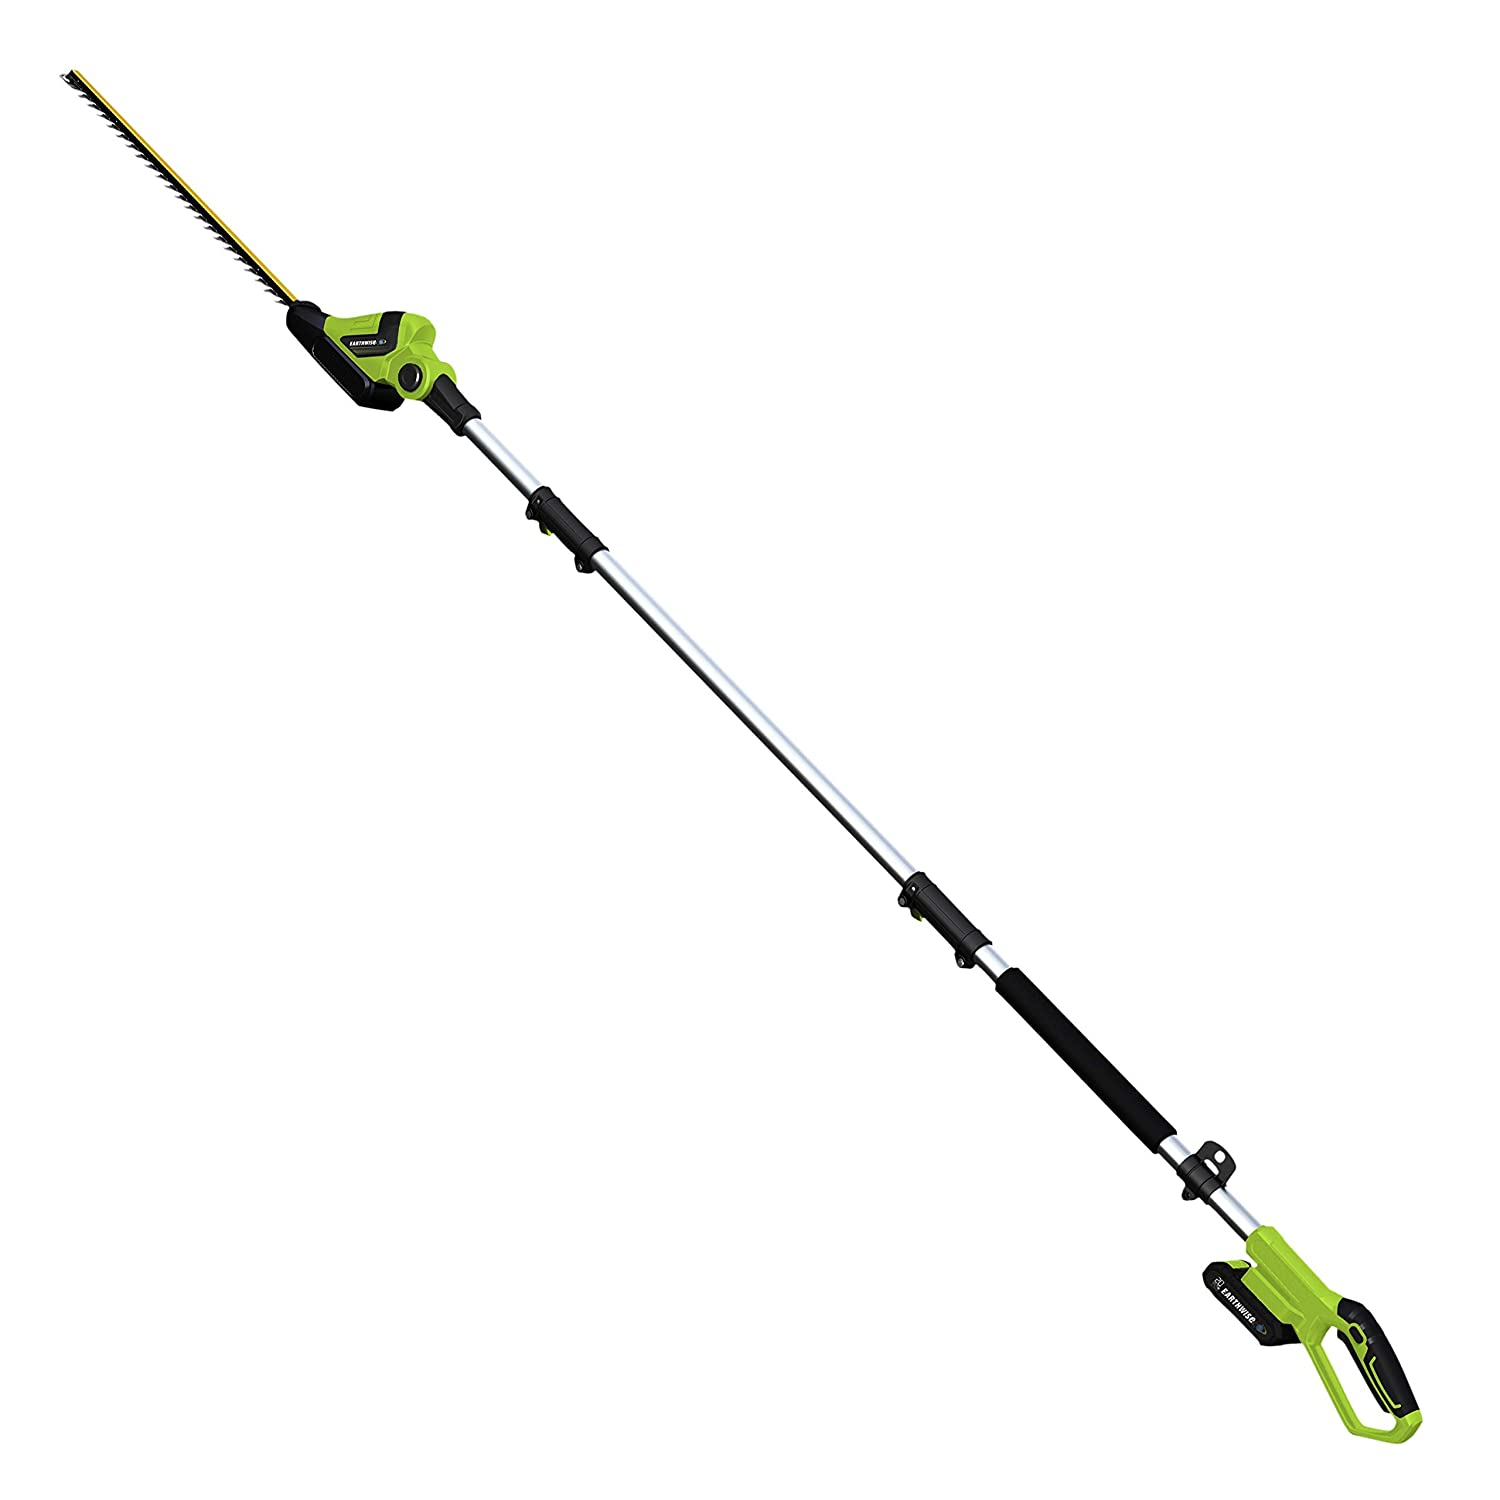 Earthwise LPHT12022 Volt 20-Inch Cordless Pole Hedge Trimmer, 2.0AH Battery Fast Charger Included Renewed